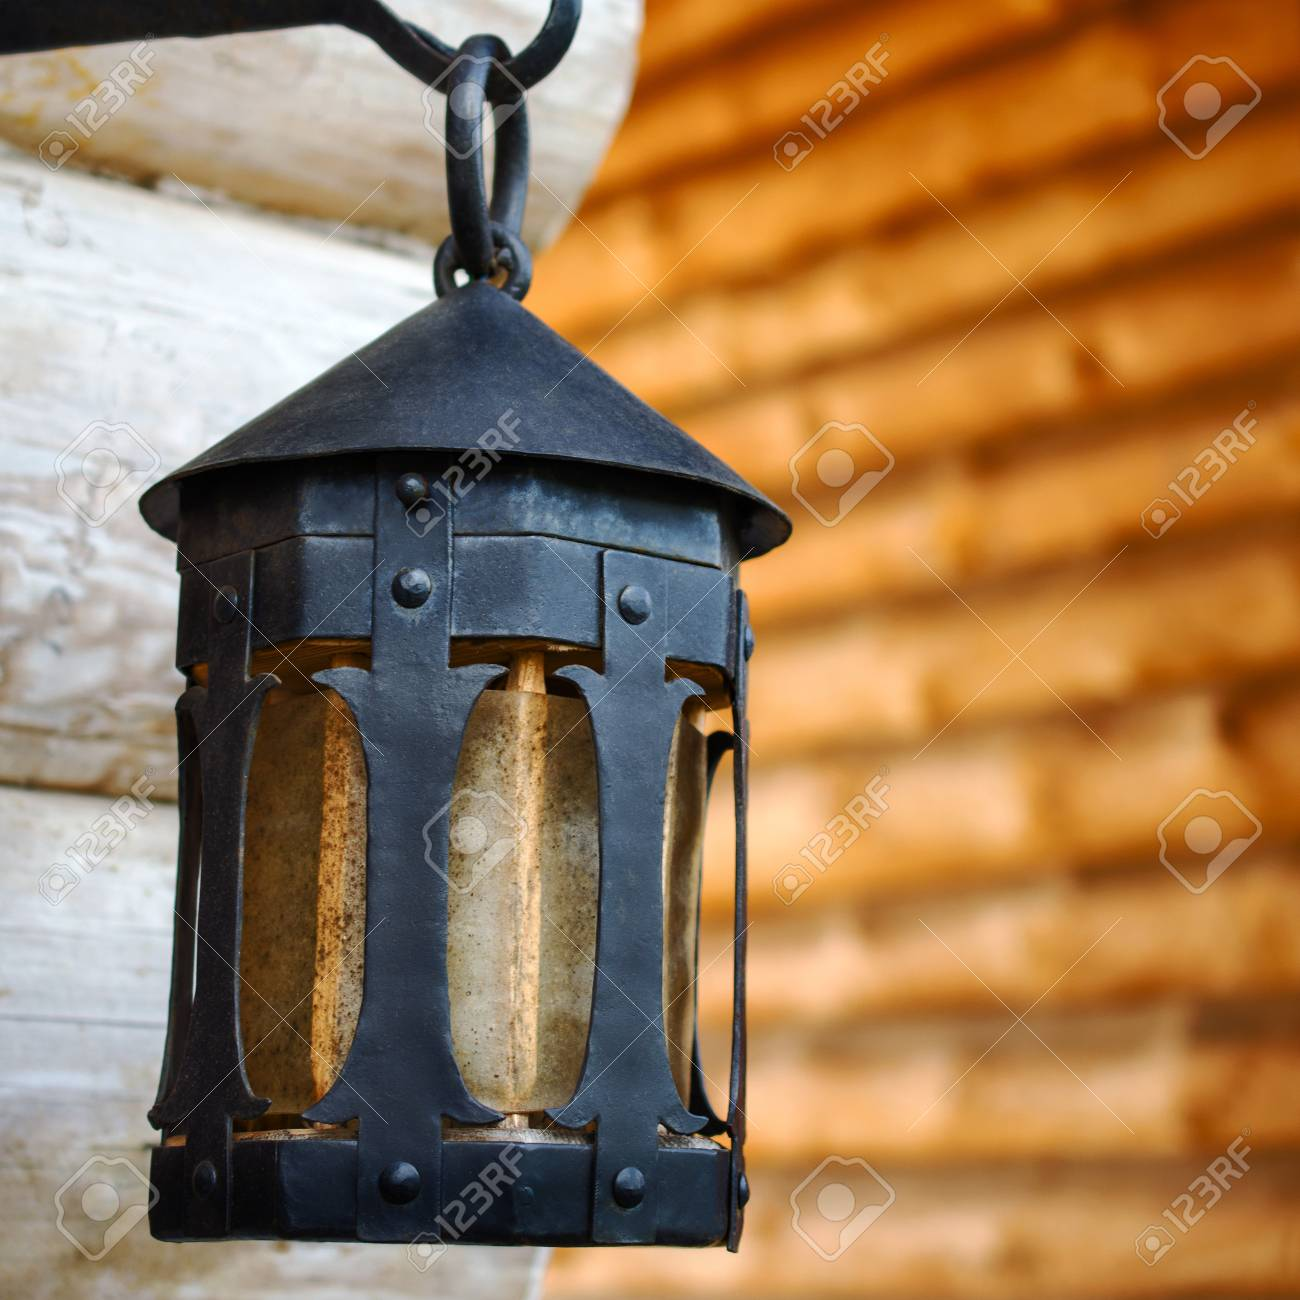 Black Decorative Antique Forged Metal Lantern On An Iron Hook Stock Photo Picture And Royalty Free Image Image 99431456